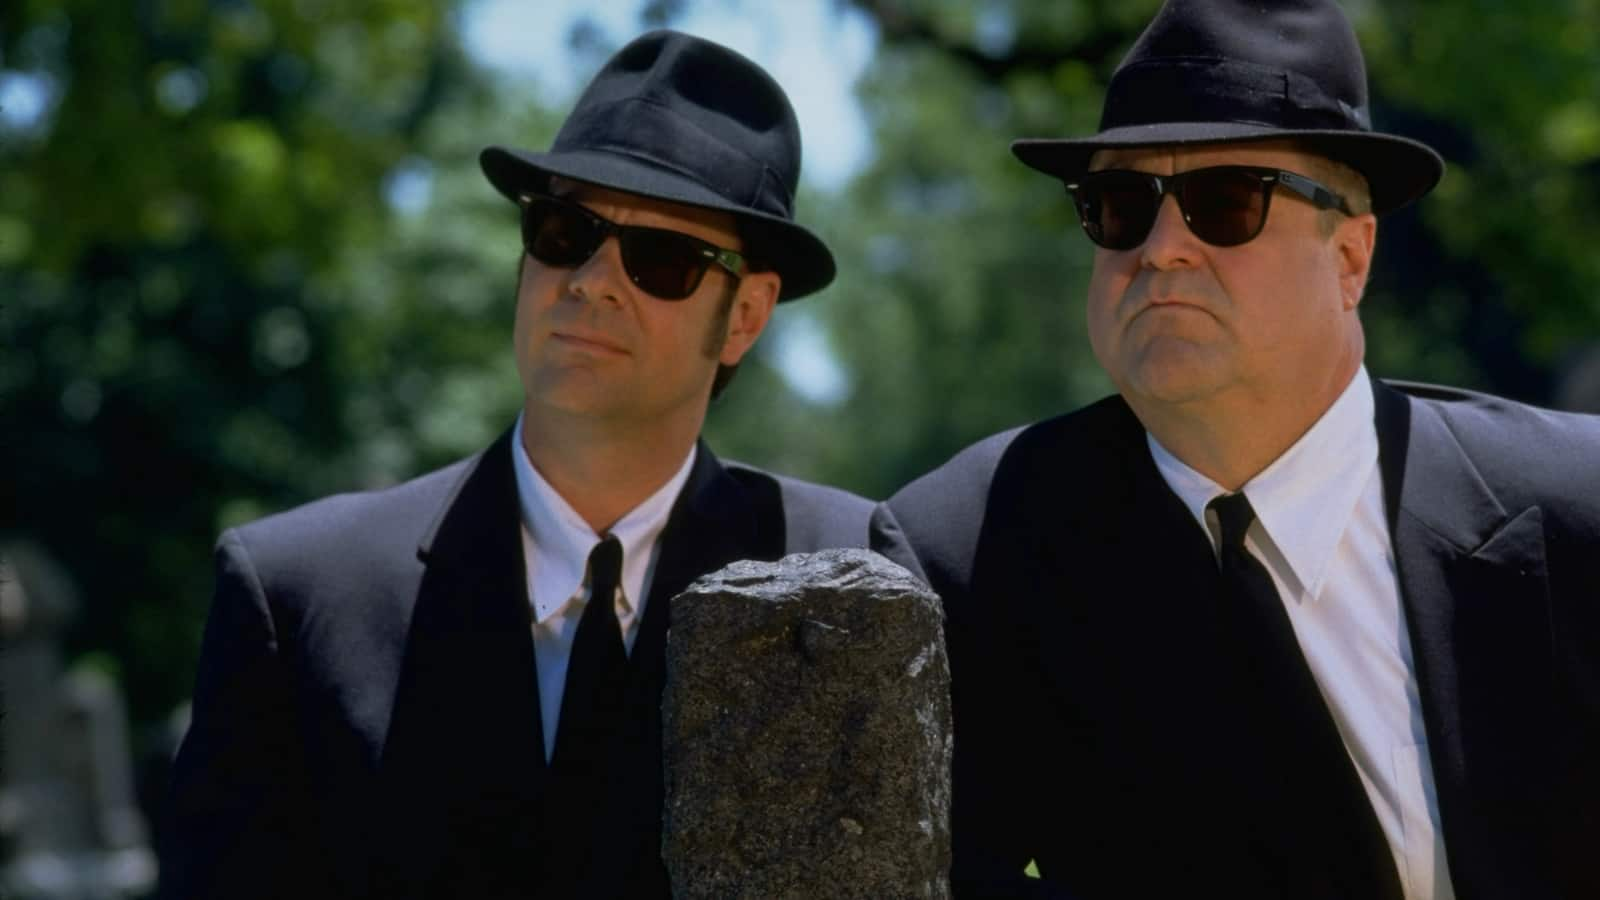 blues-brothers-2000-1998